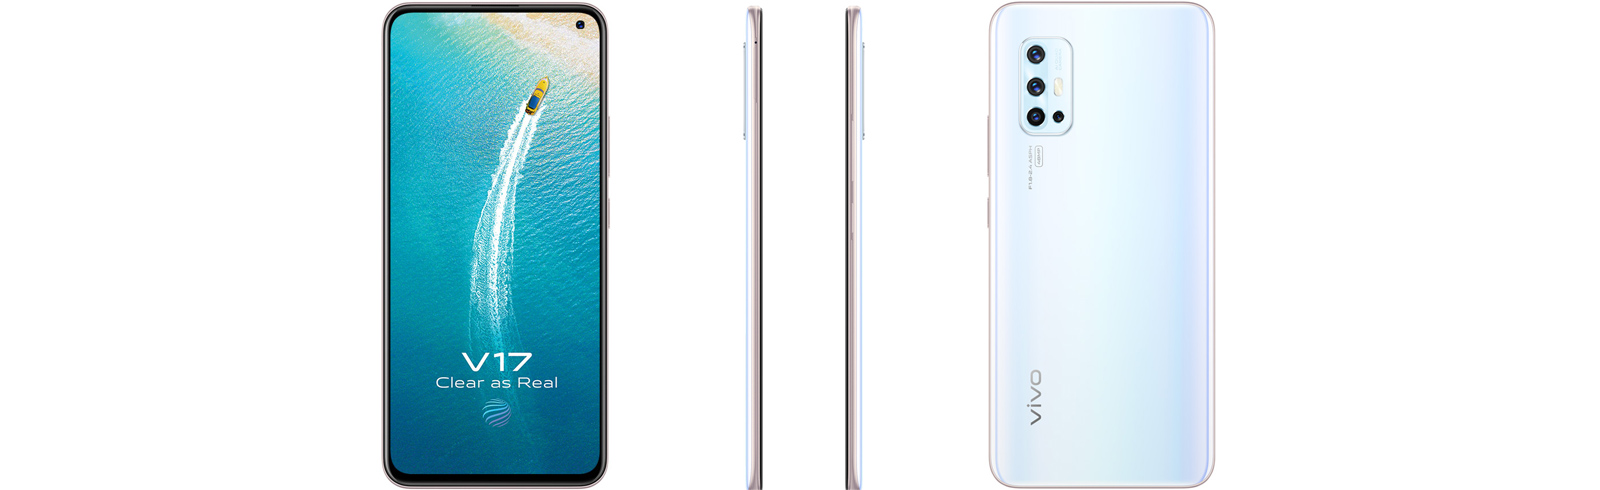 Vivo V17 with Snapdragon 675 goes official in India